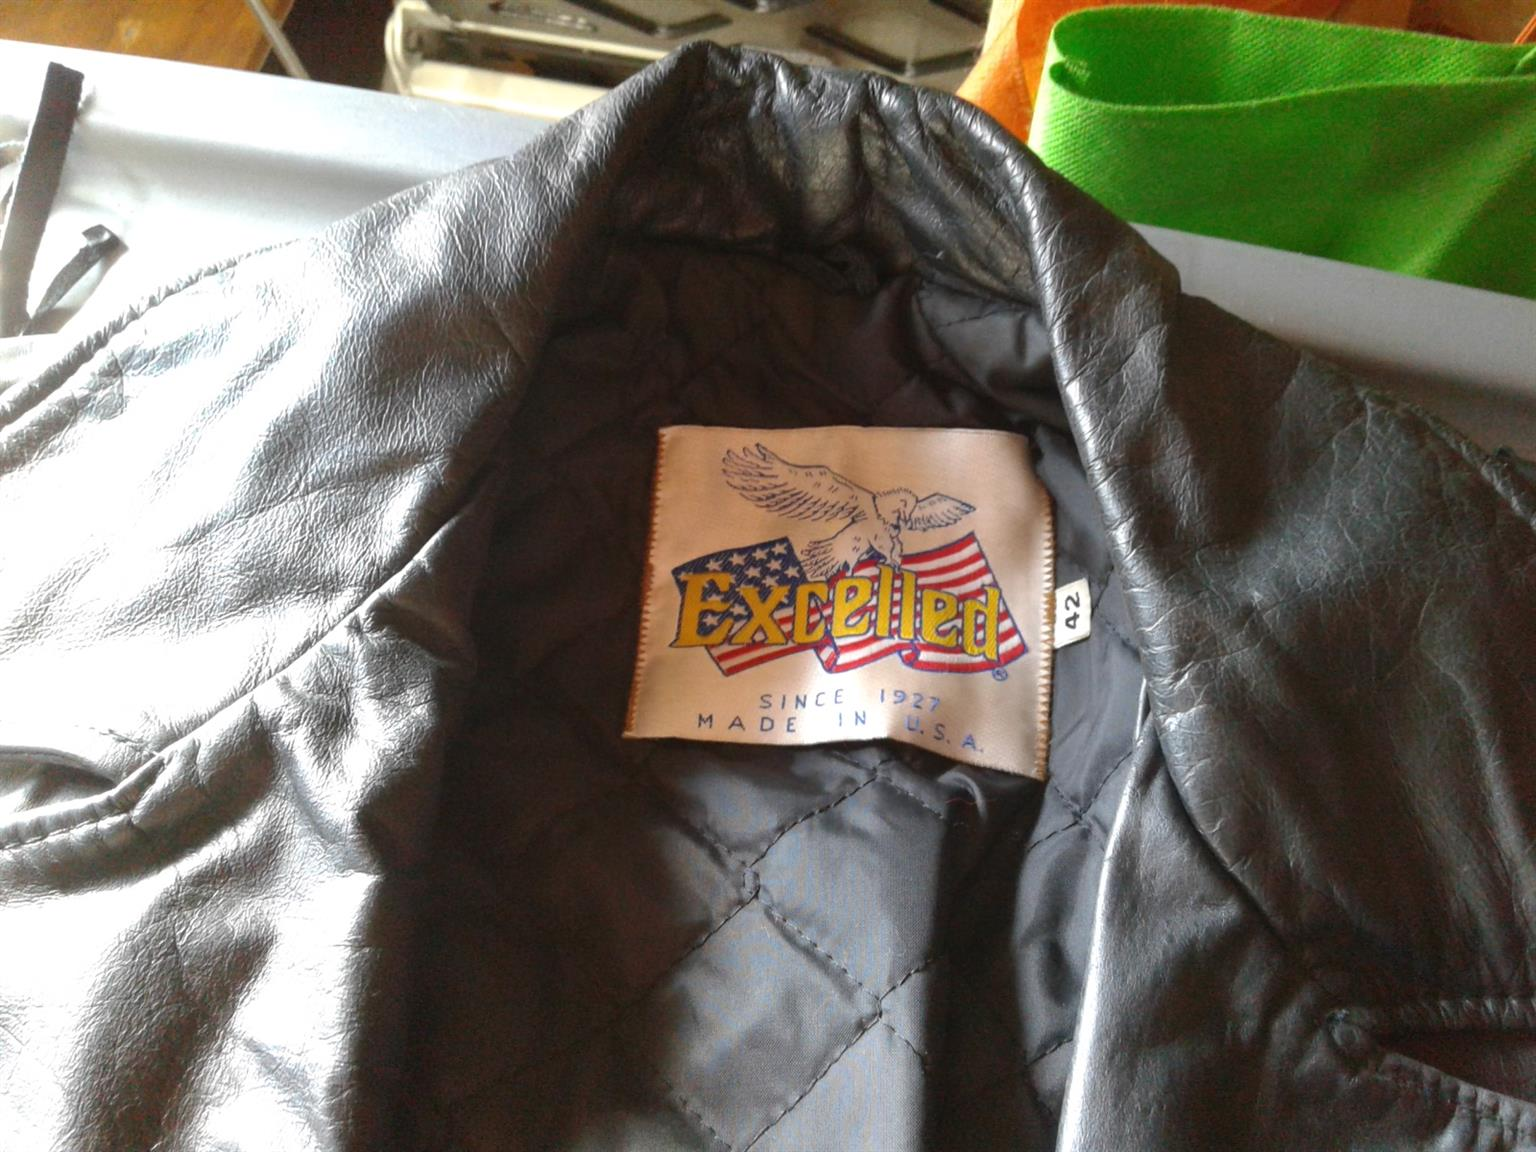 Leather Jackets from the USA